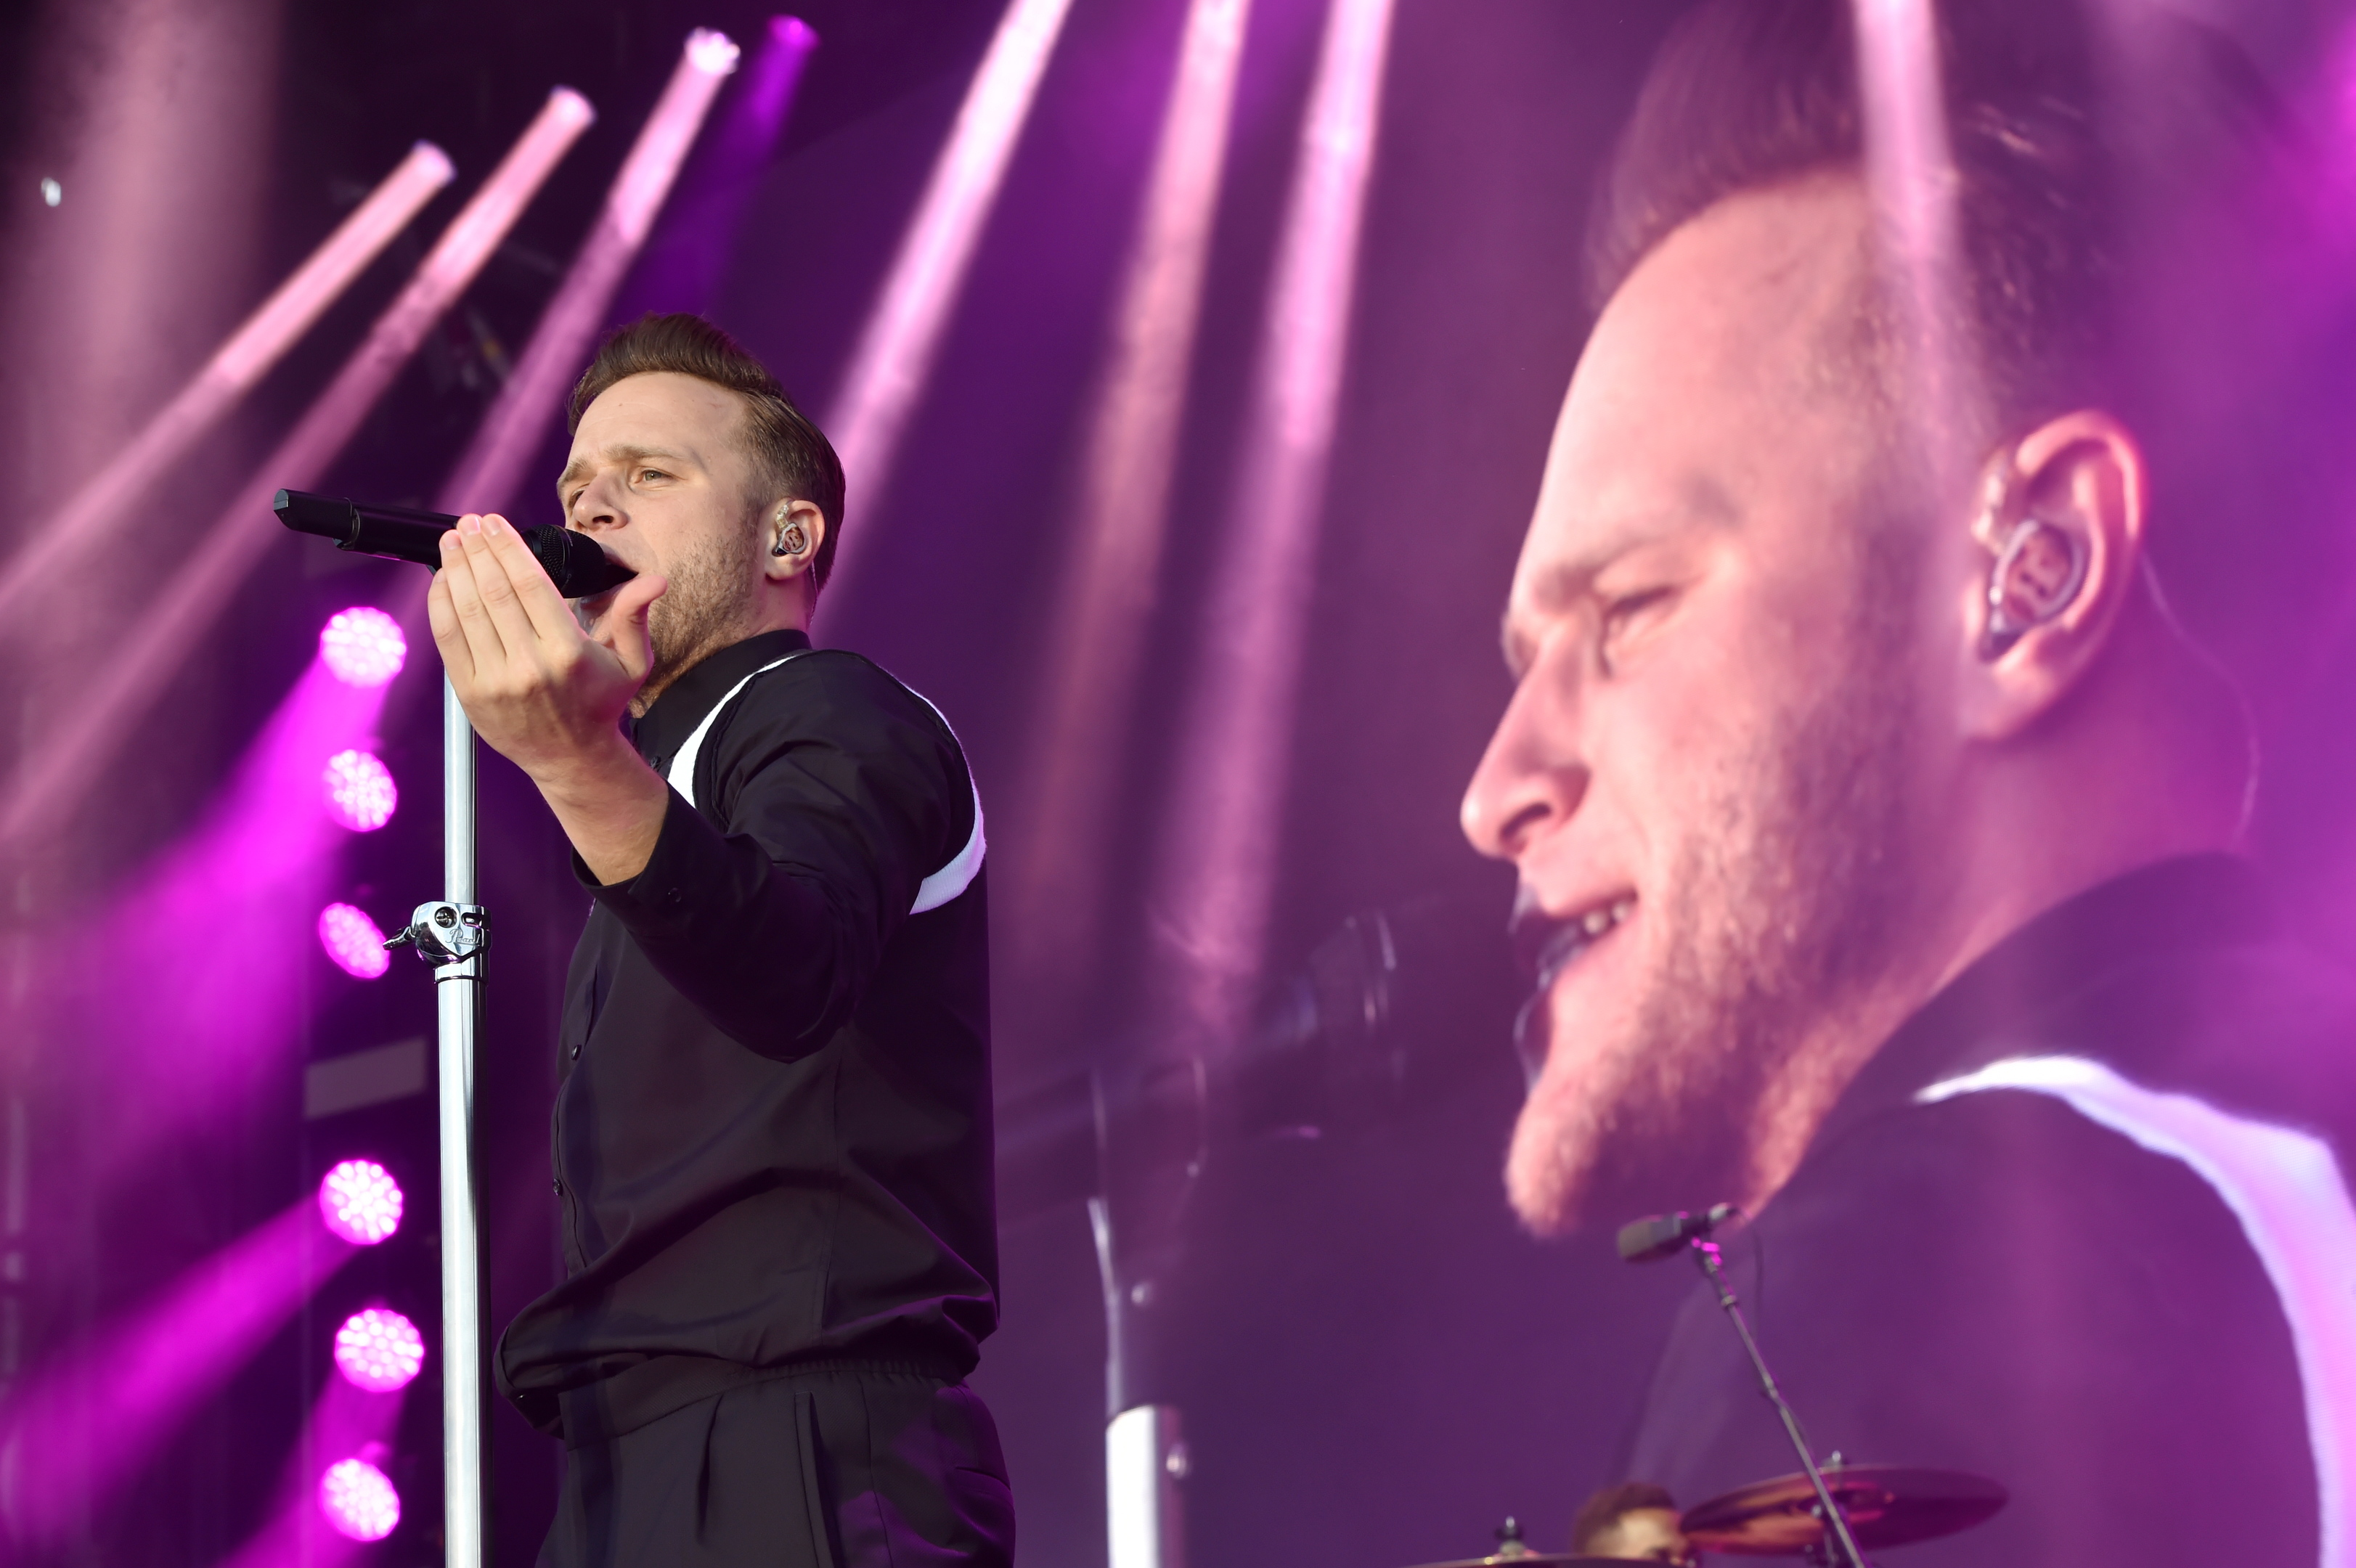 Olly Murs performing outdoors at Aberdeen Exhibition and Conference Centre. Pictures by Kenny Elrick.